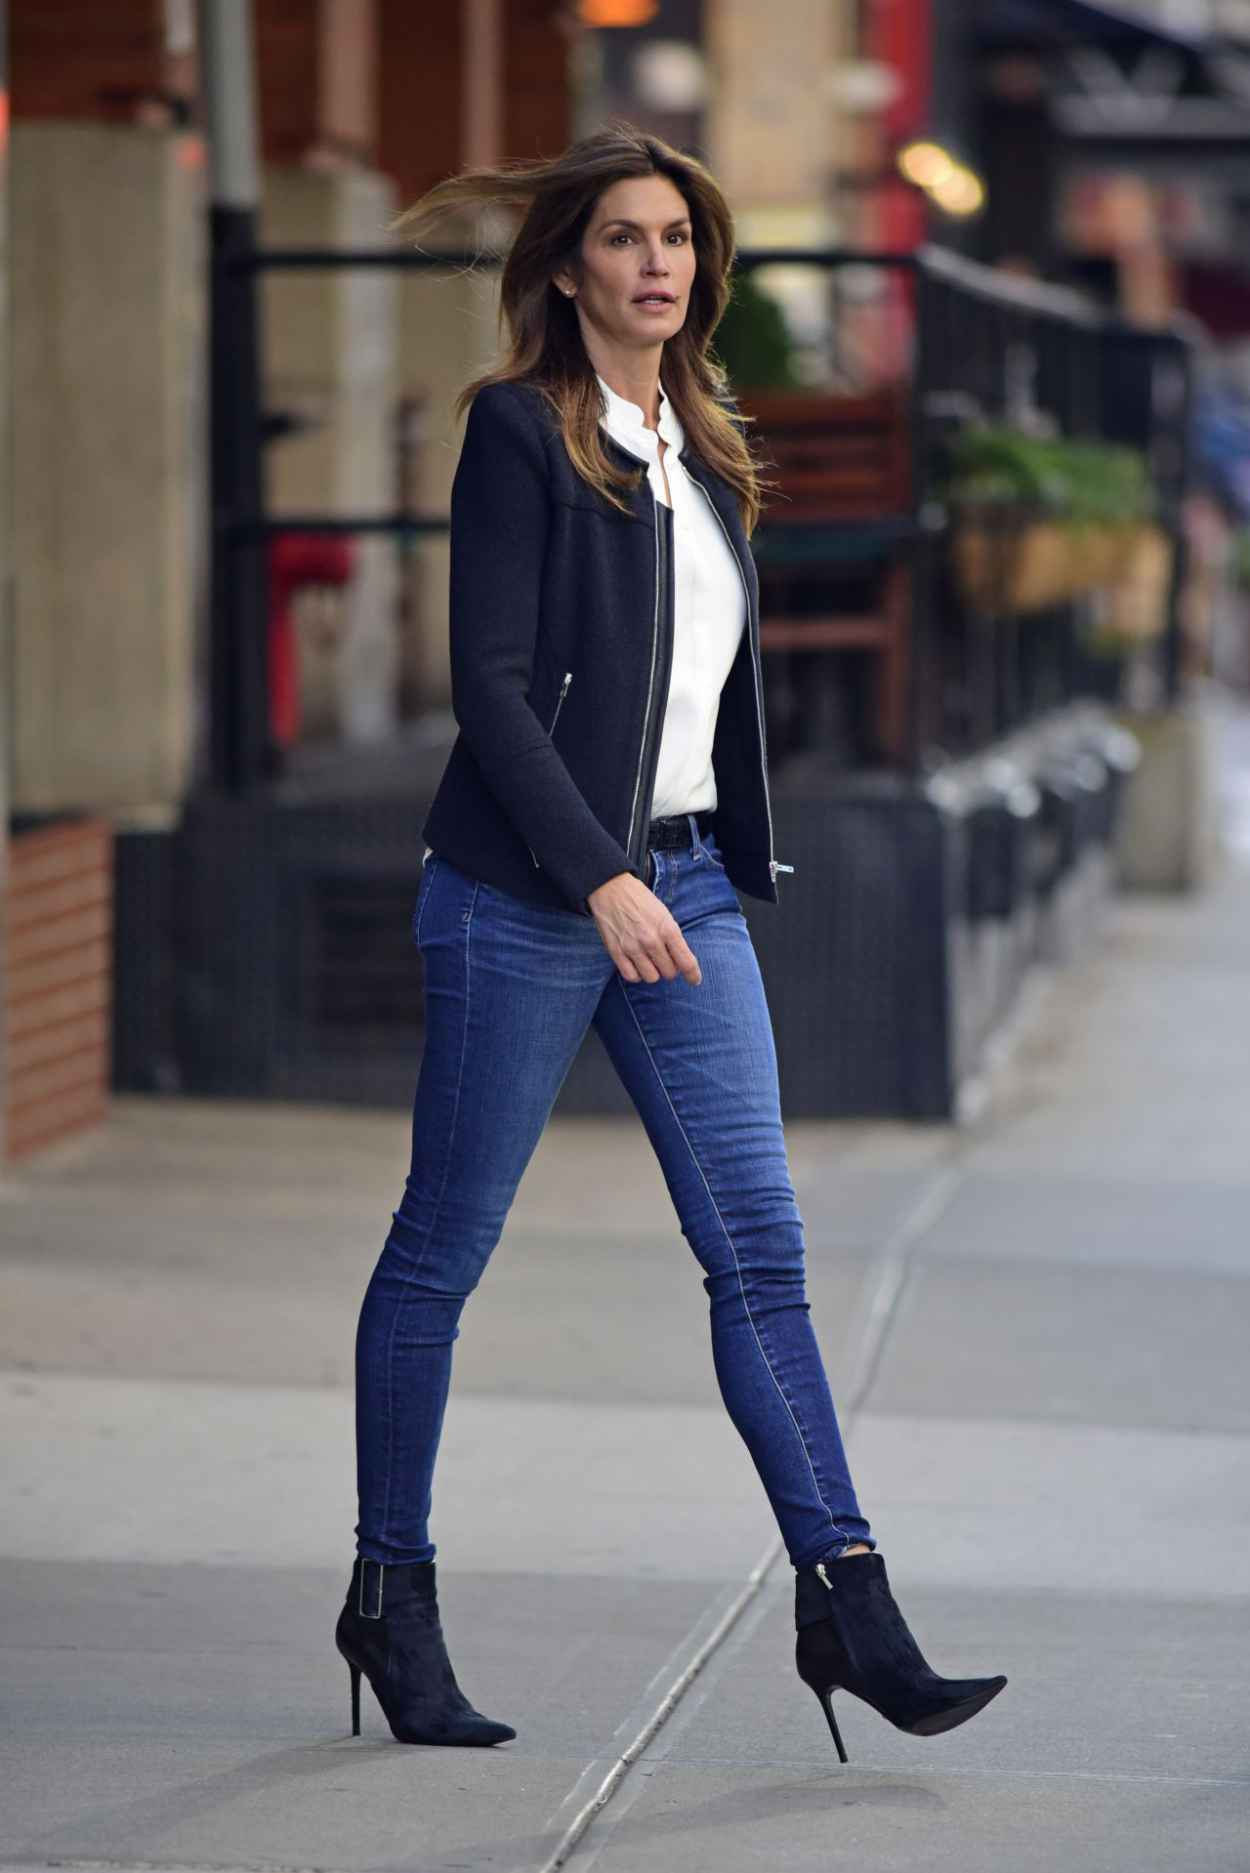 Cindy Crawford in Tight Jeans - Leaving Her Hotel in New York City-1